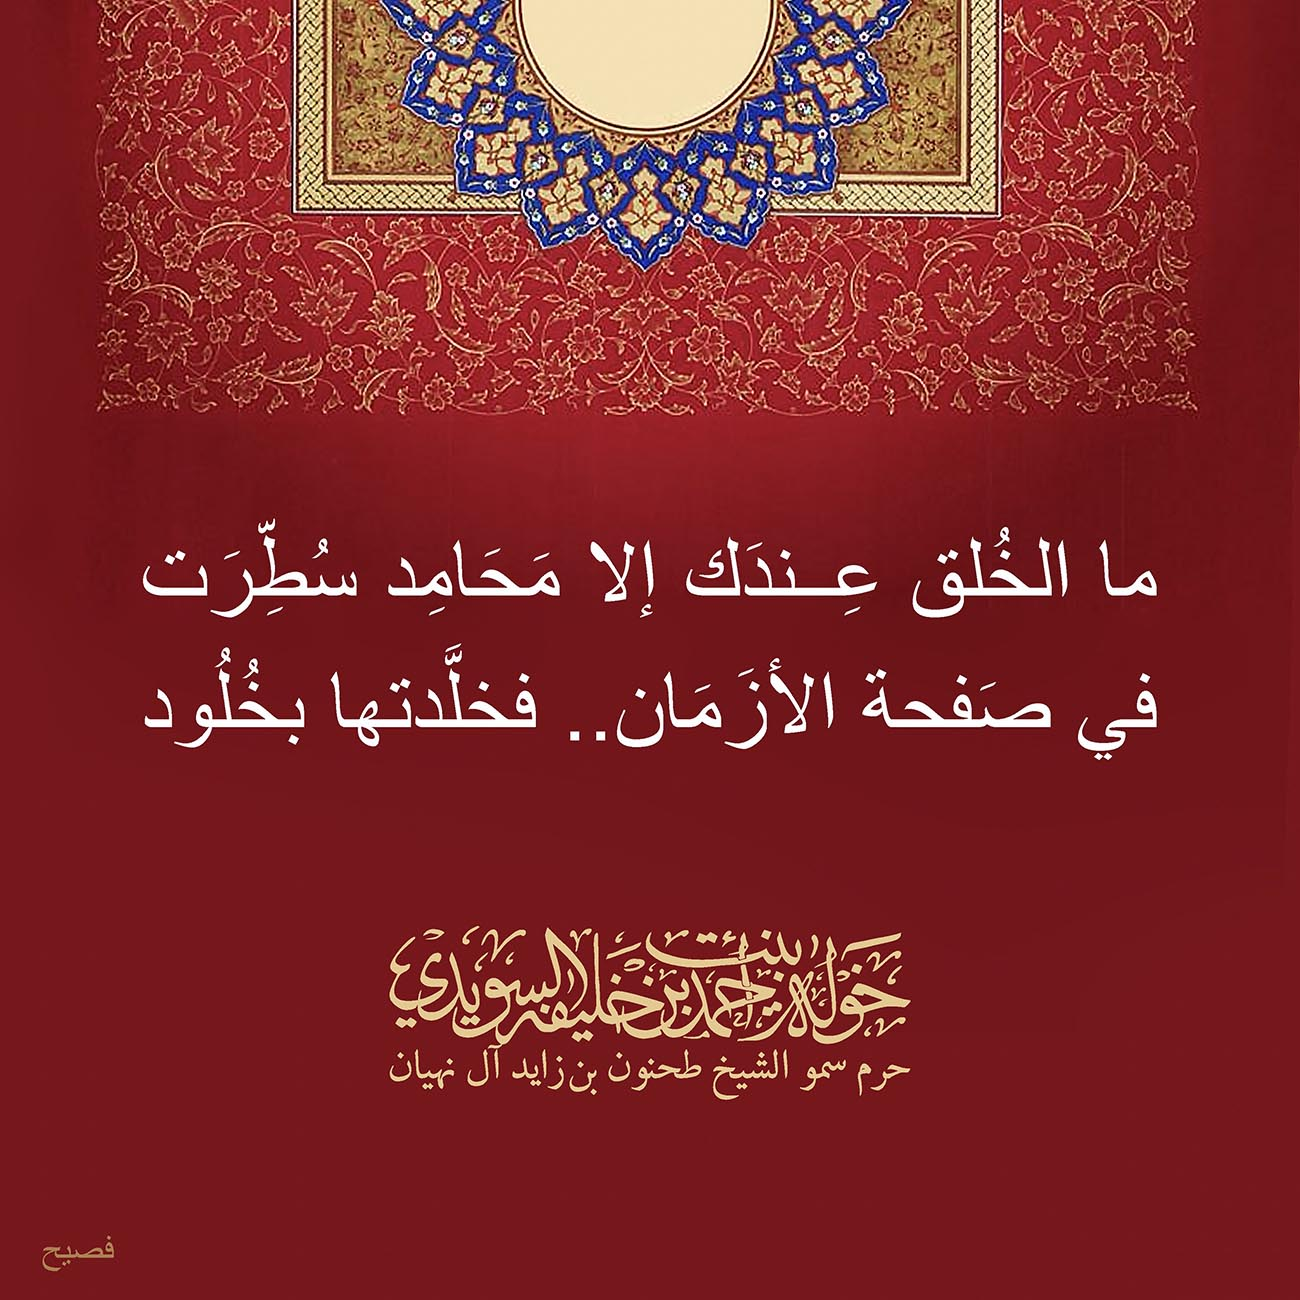 ما الخُلق عِندَك إلا مَحَامِد سُطِّرَت